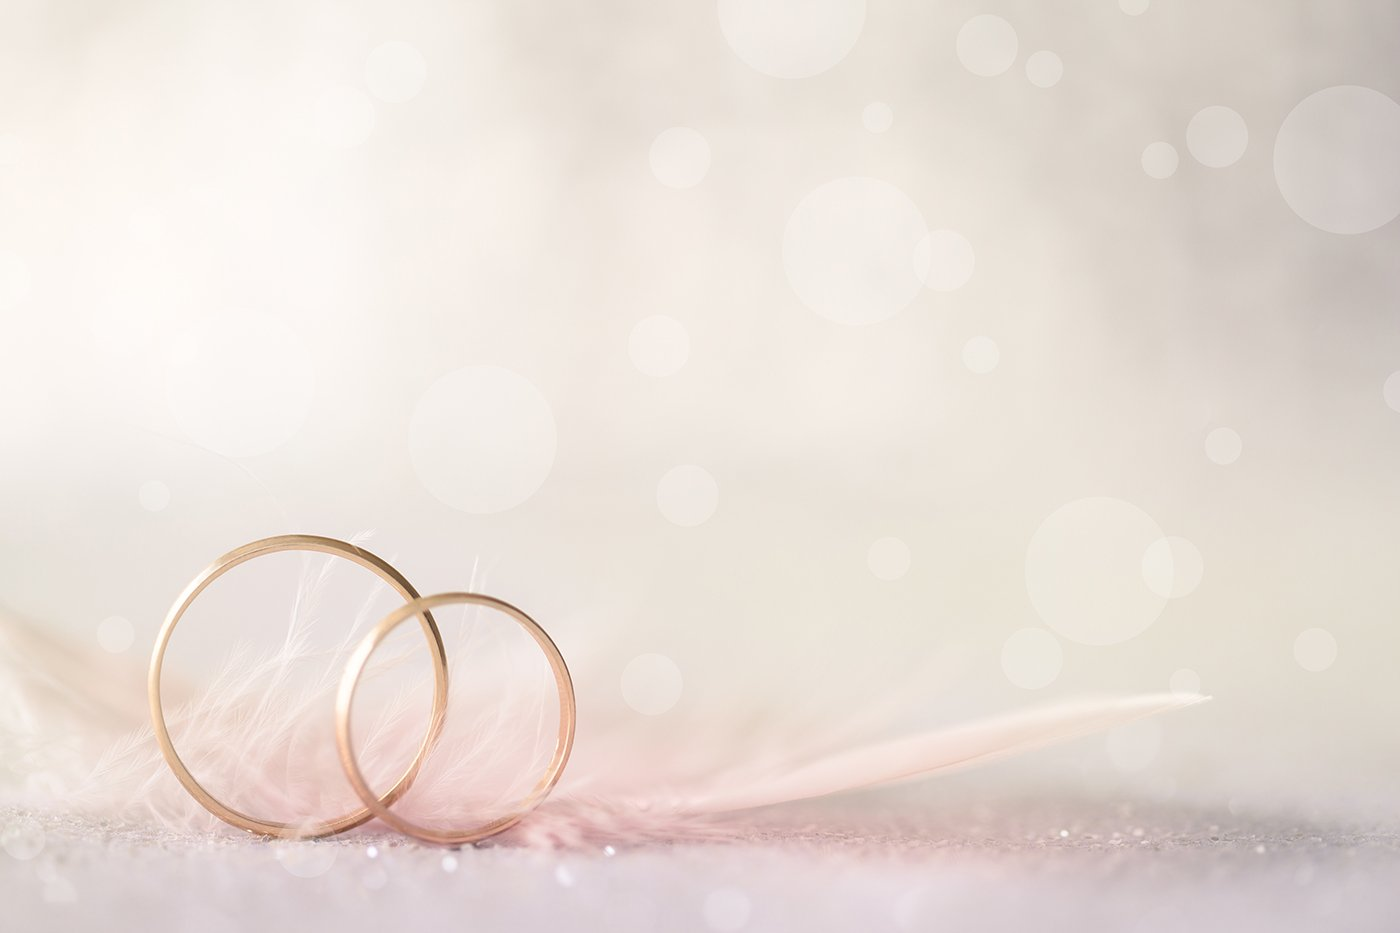 Two Golden Wedding Rings And Feather Light Soft Background Tlj